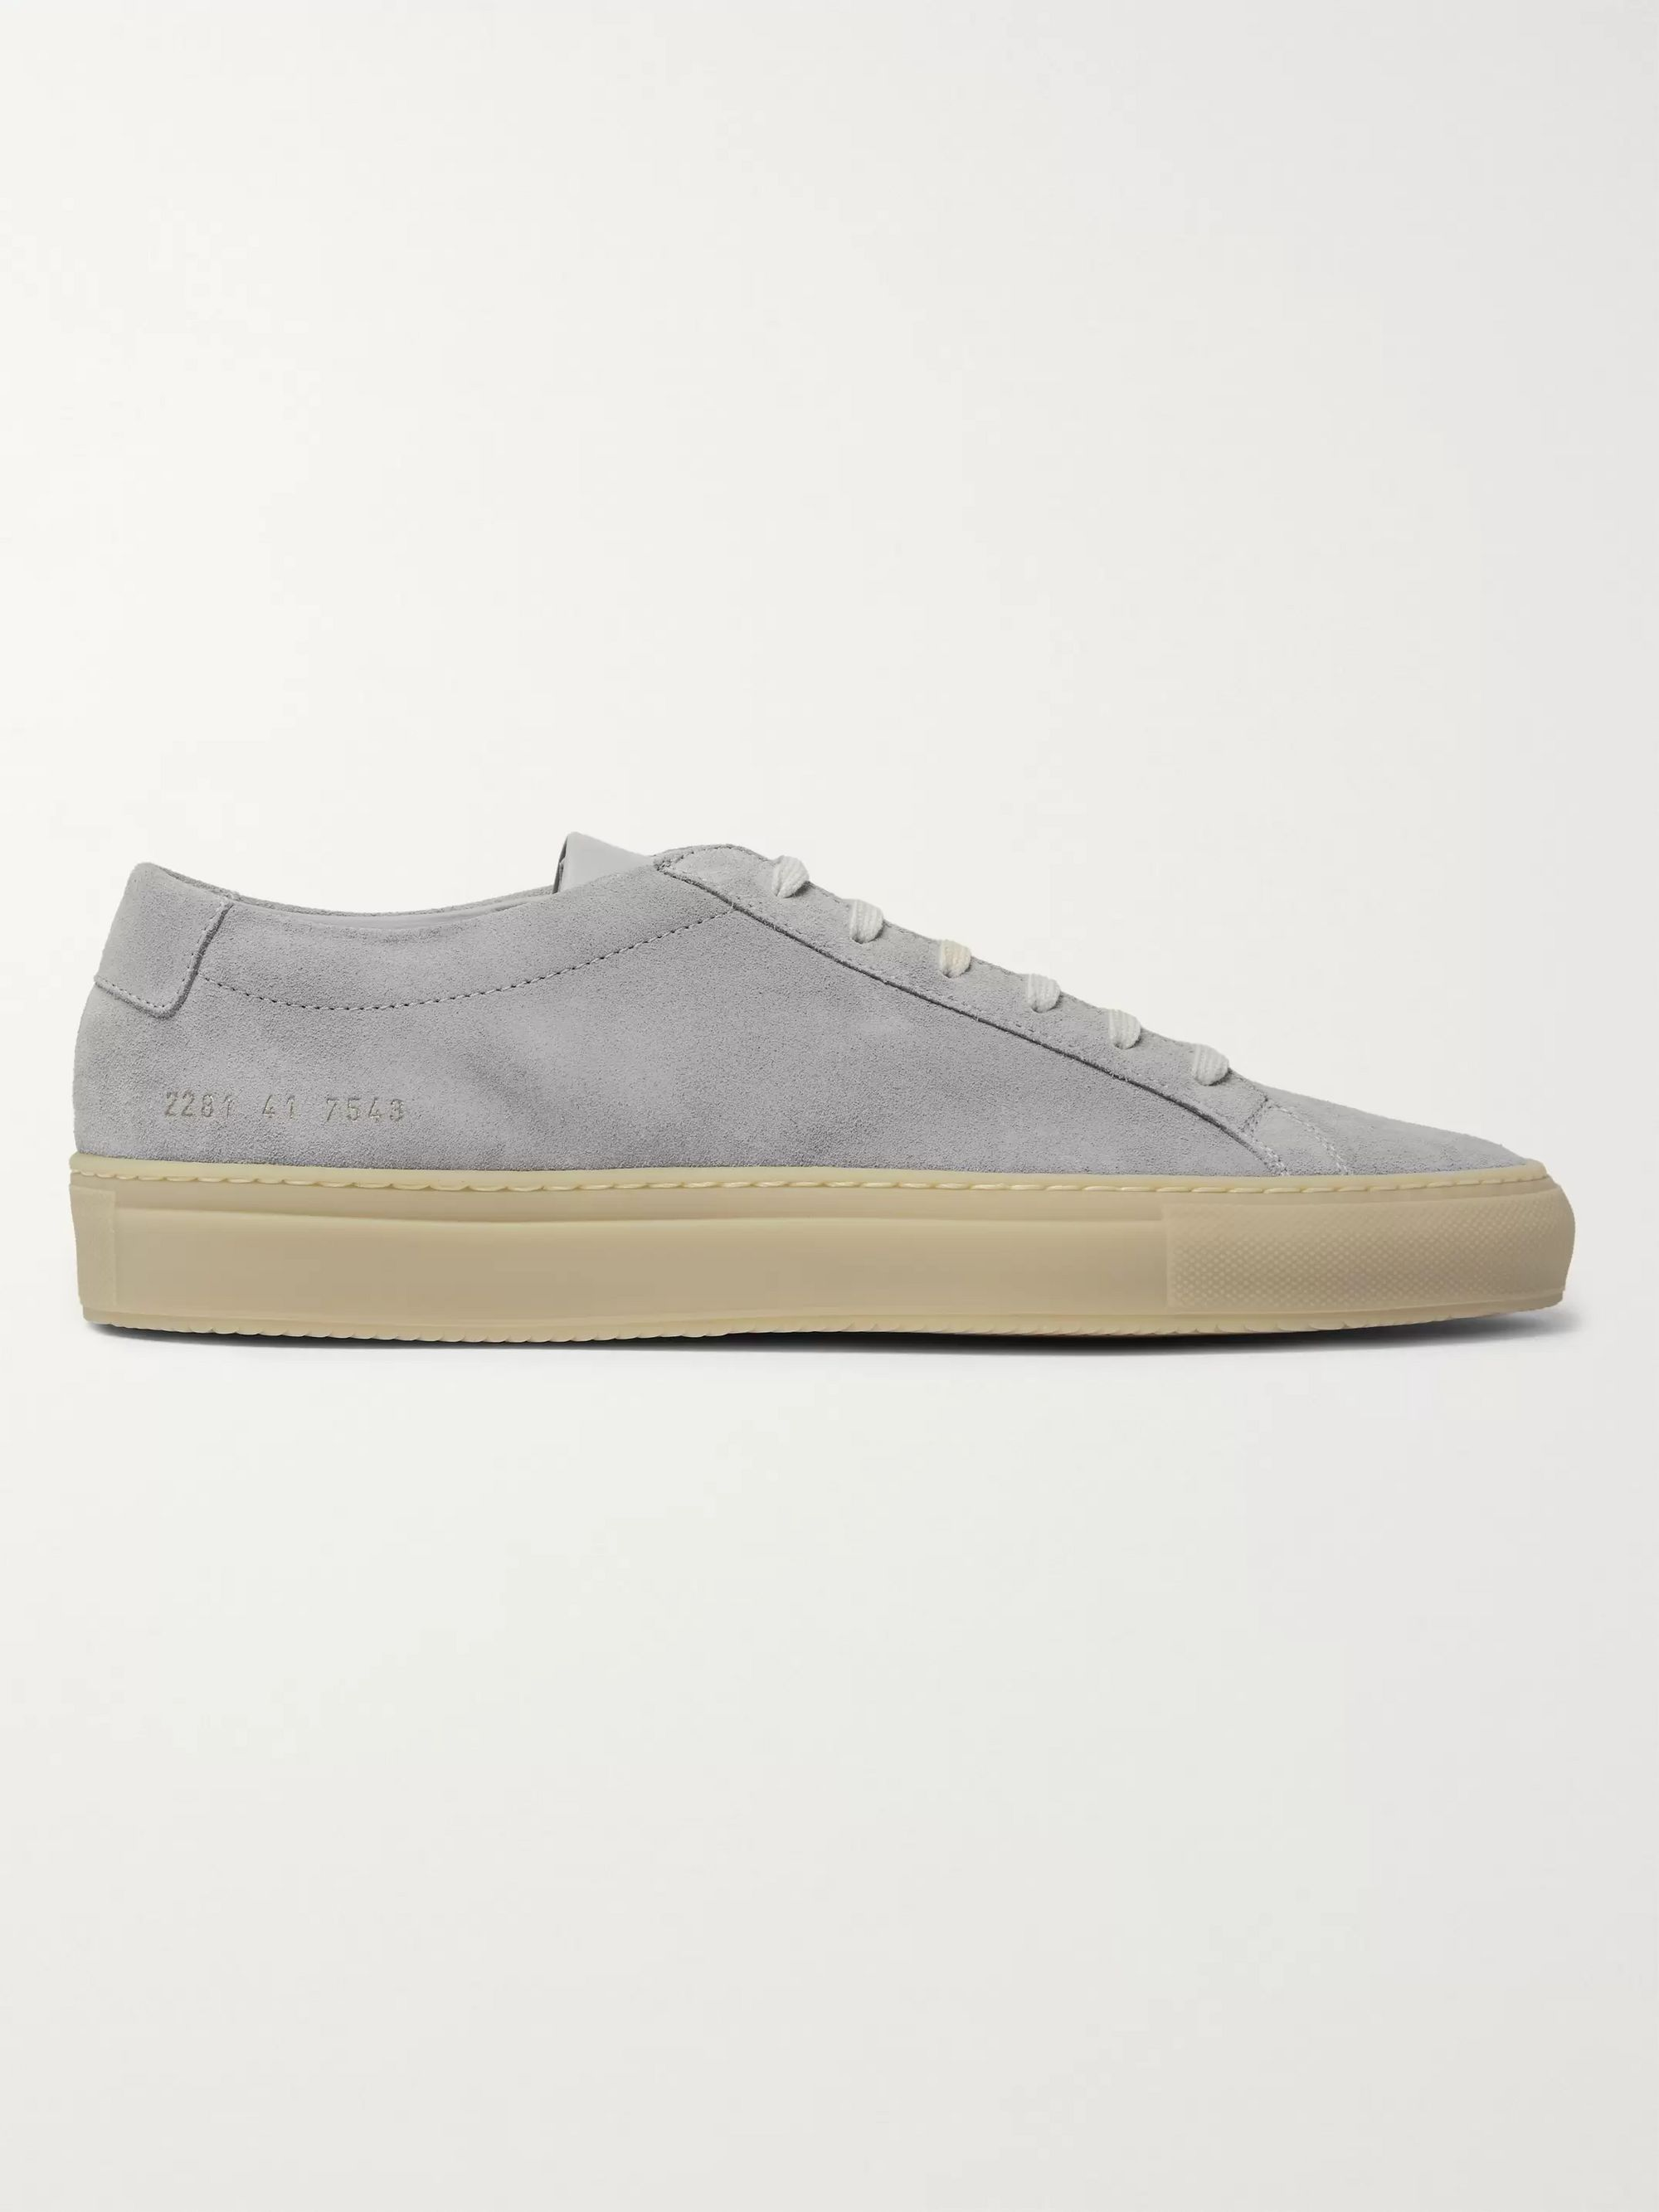 Common Projects Achilles Suede and Leather Sneakers